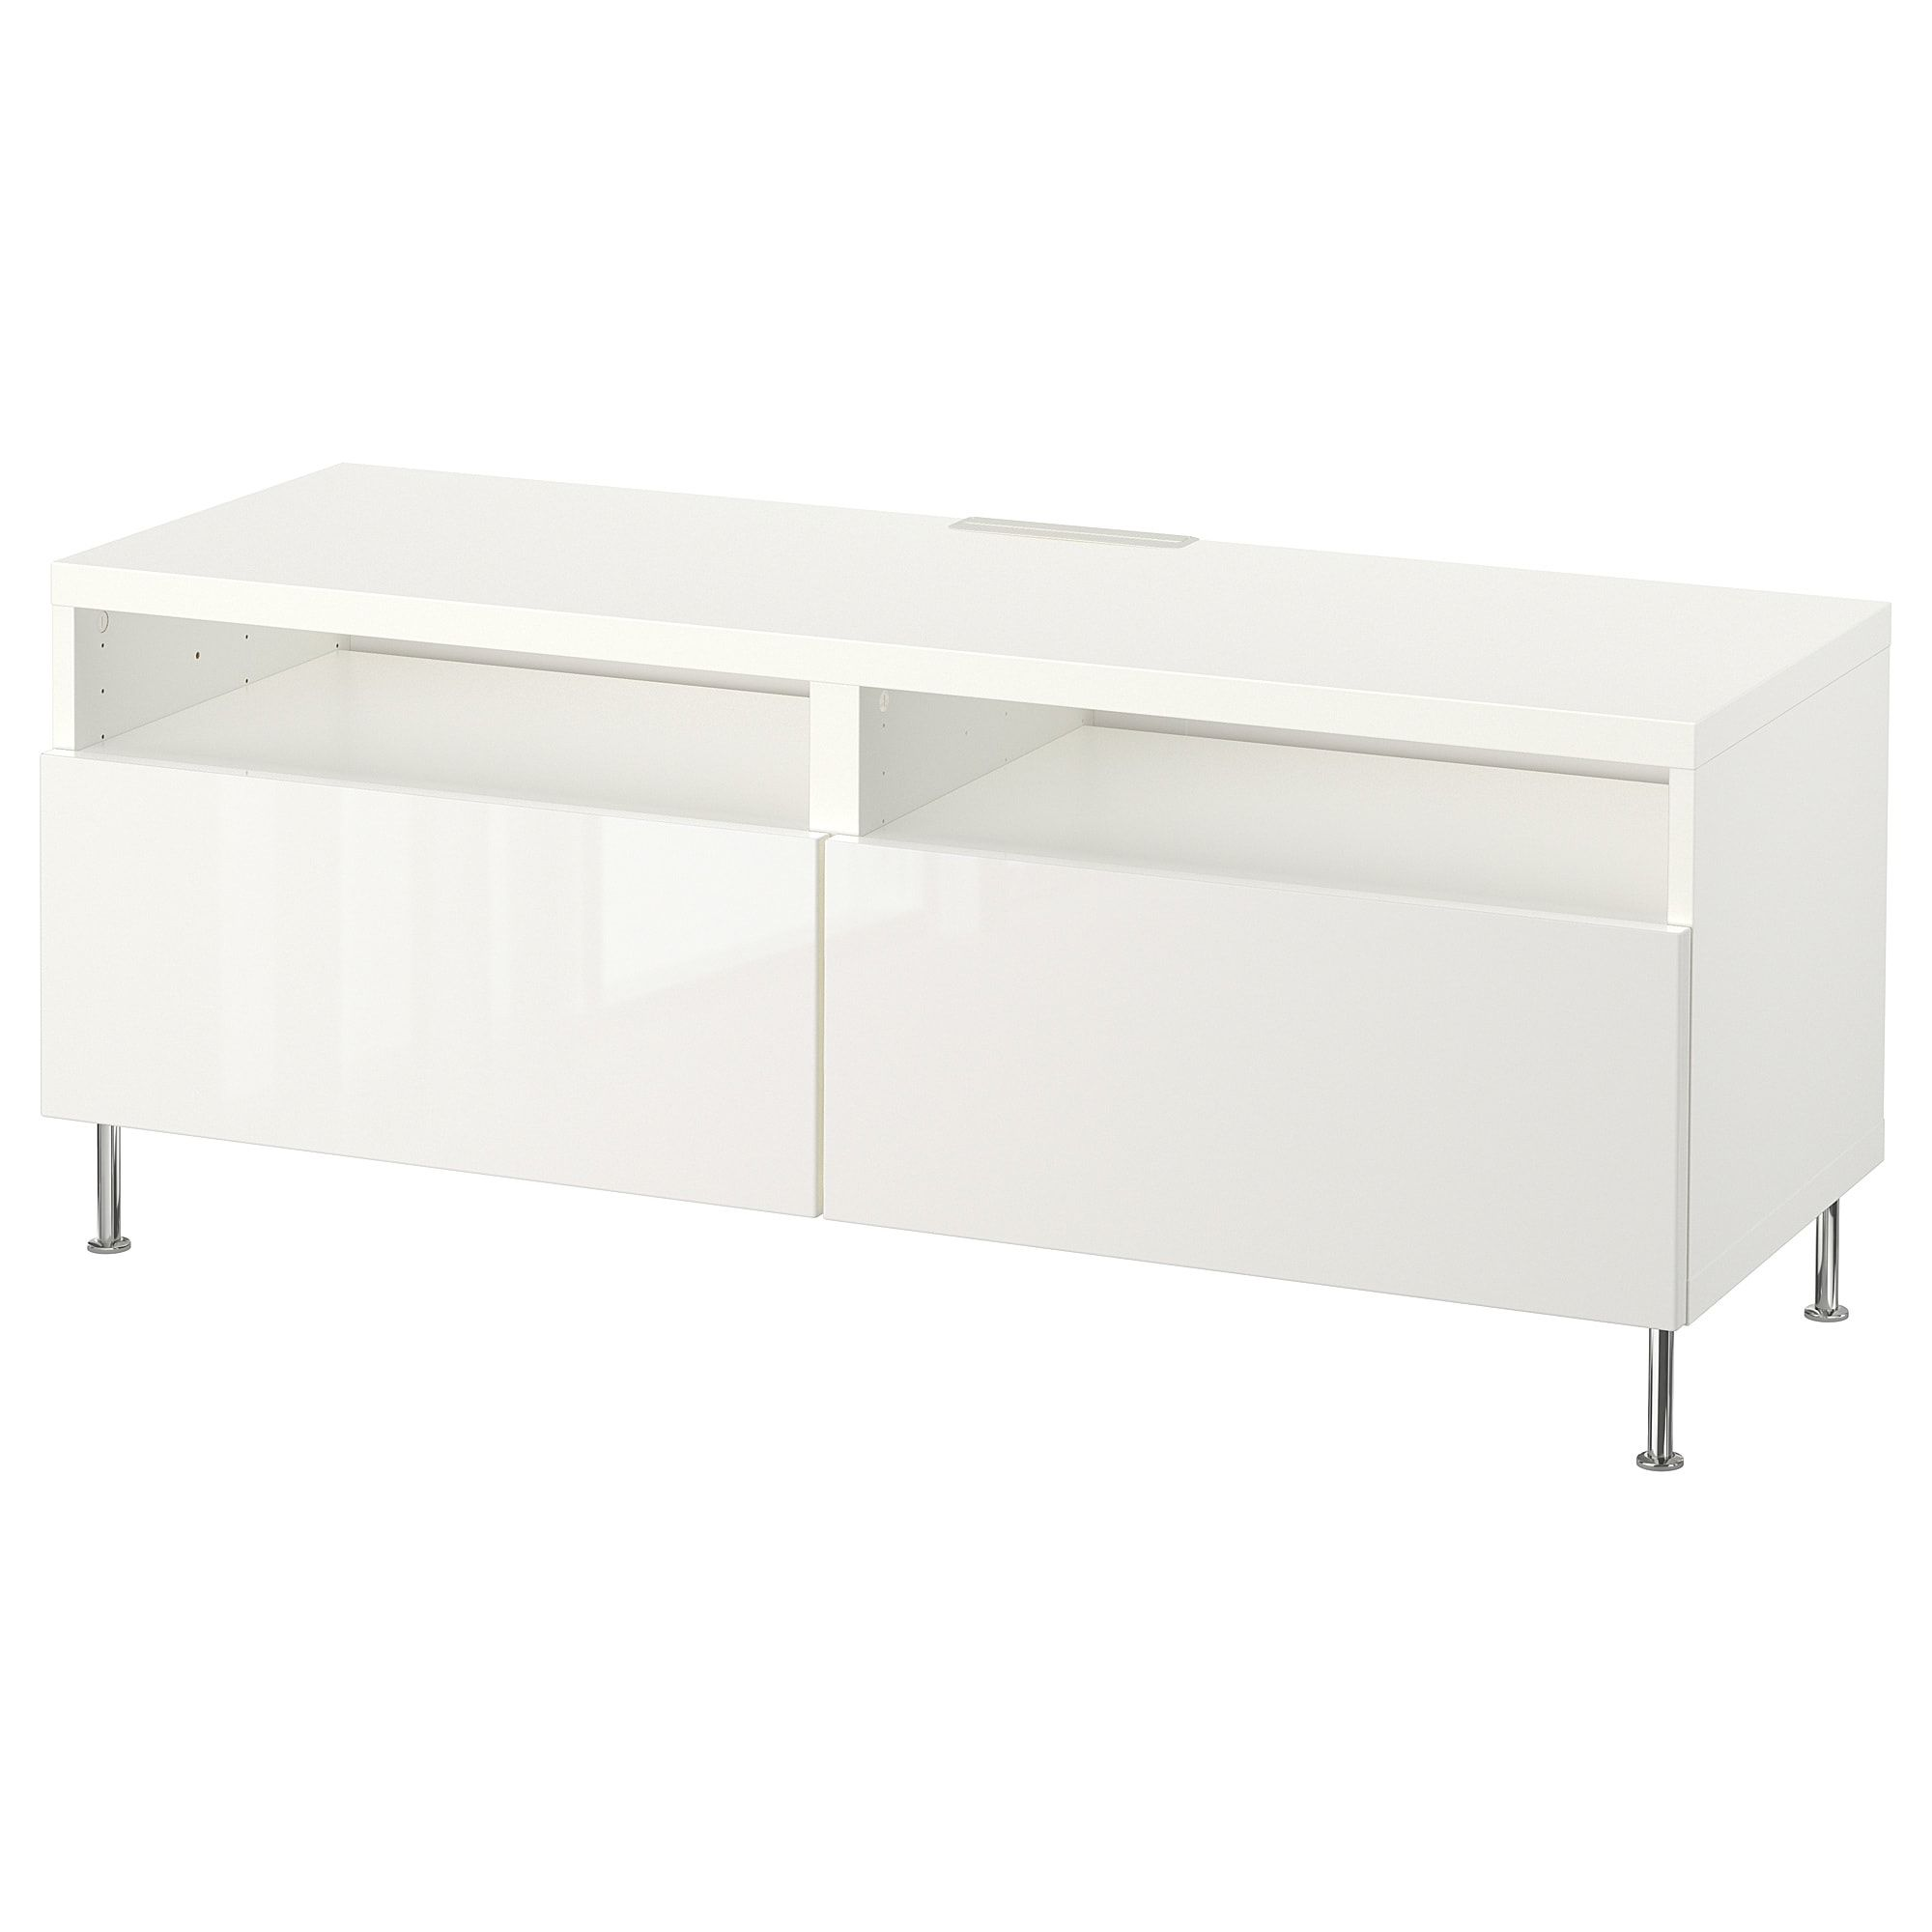 Besta Tv Unit With Drawers White Selsviken Stallarp High Gloss White 47 1 4x15 3 4x18 7 8 Tv Unit Bench With Drawers Tv Bench